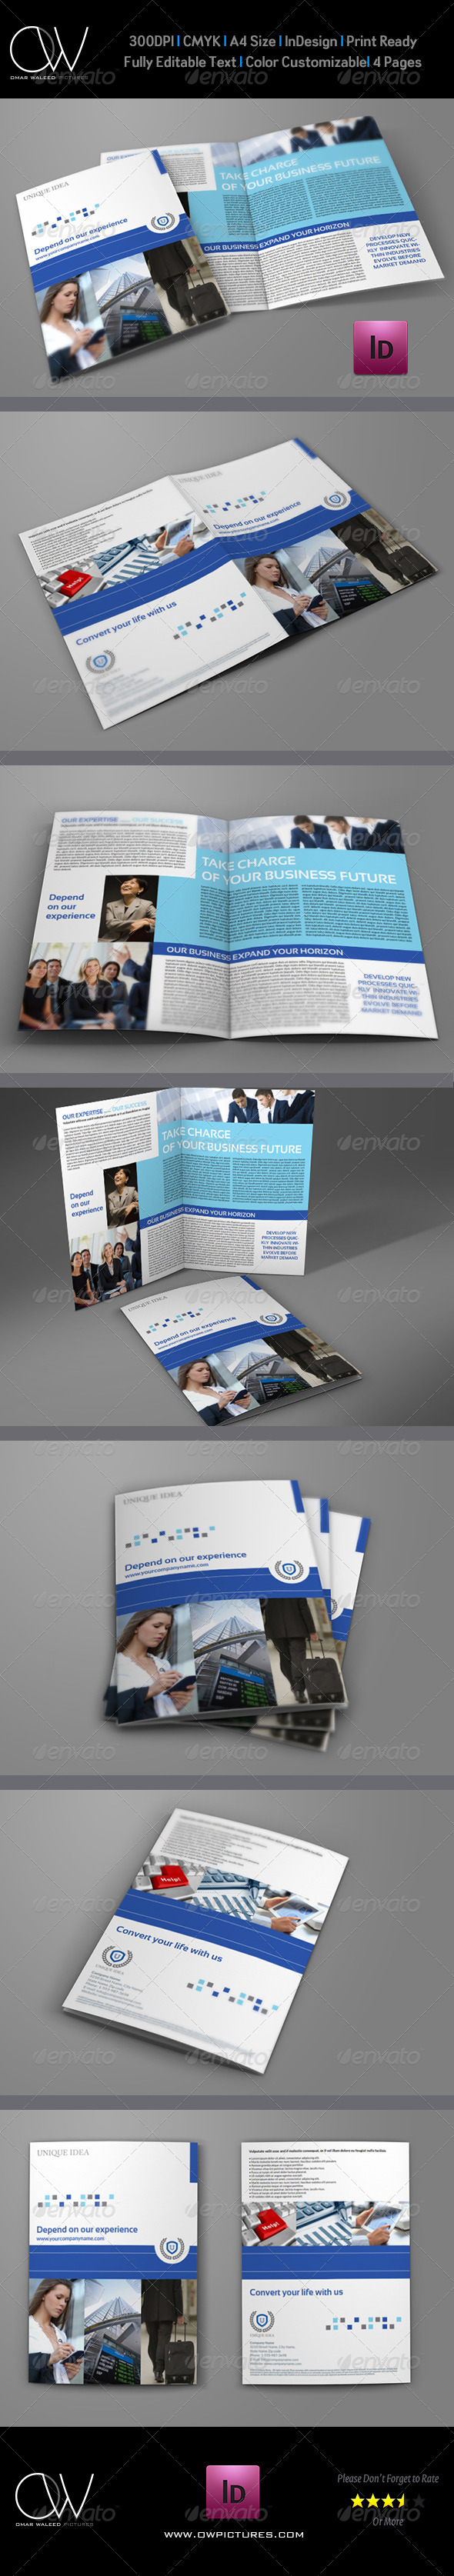 Company Brochure Bi-Fold Template Vol.20 - Corporate Brochures